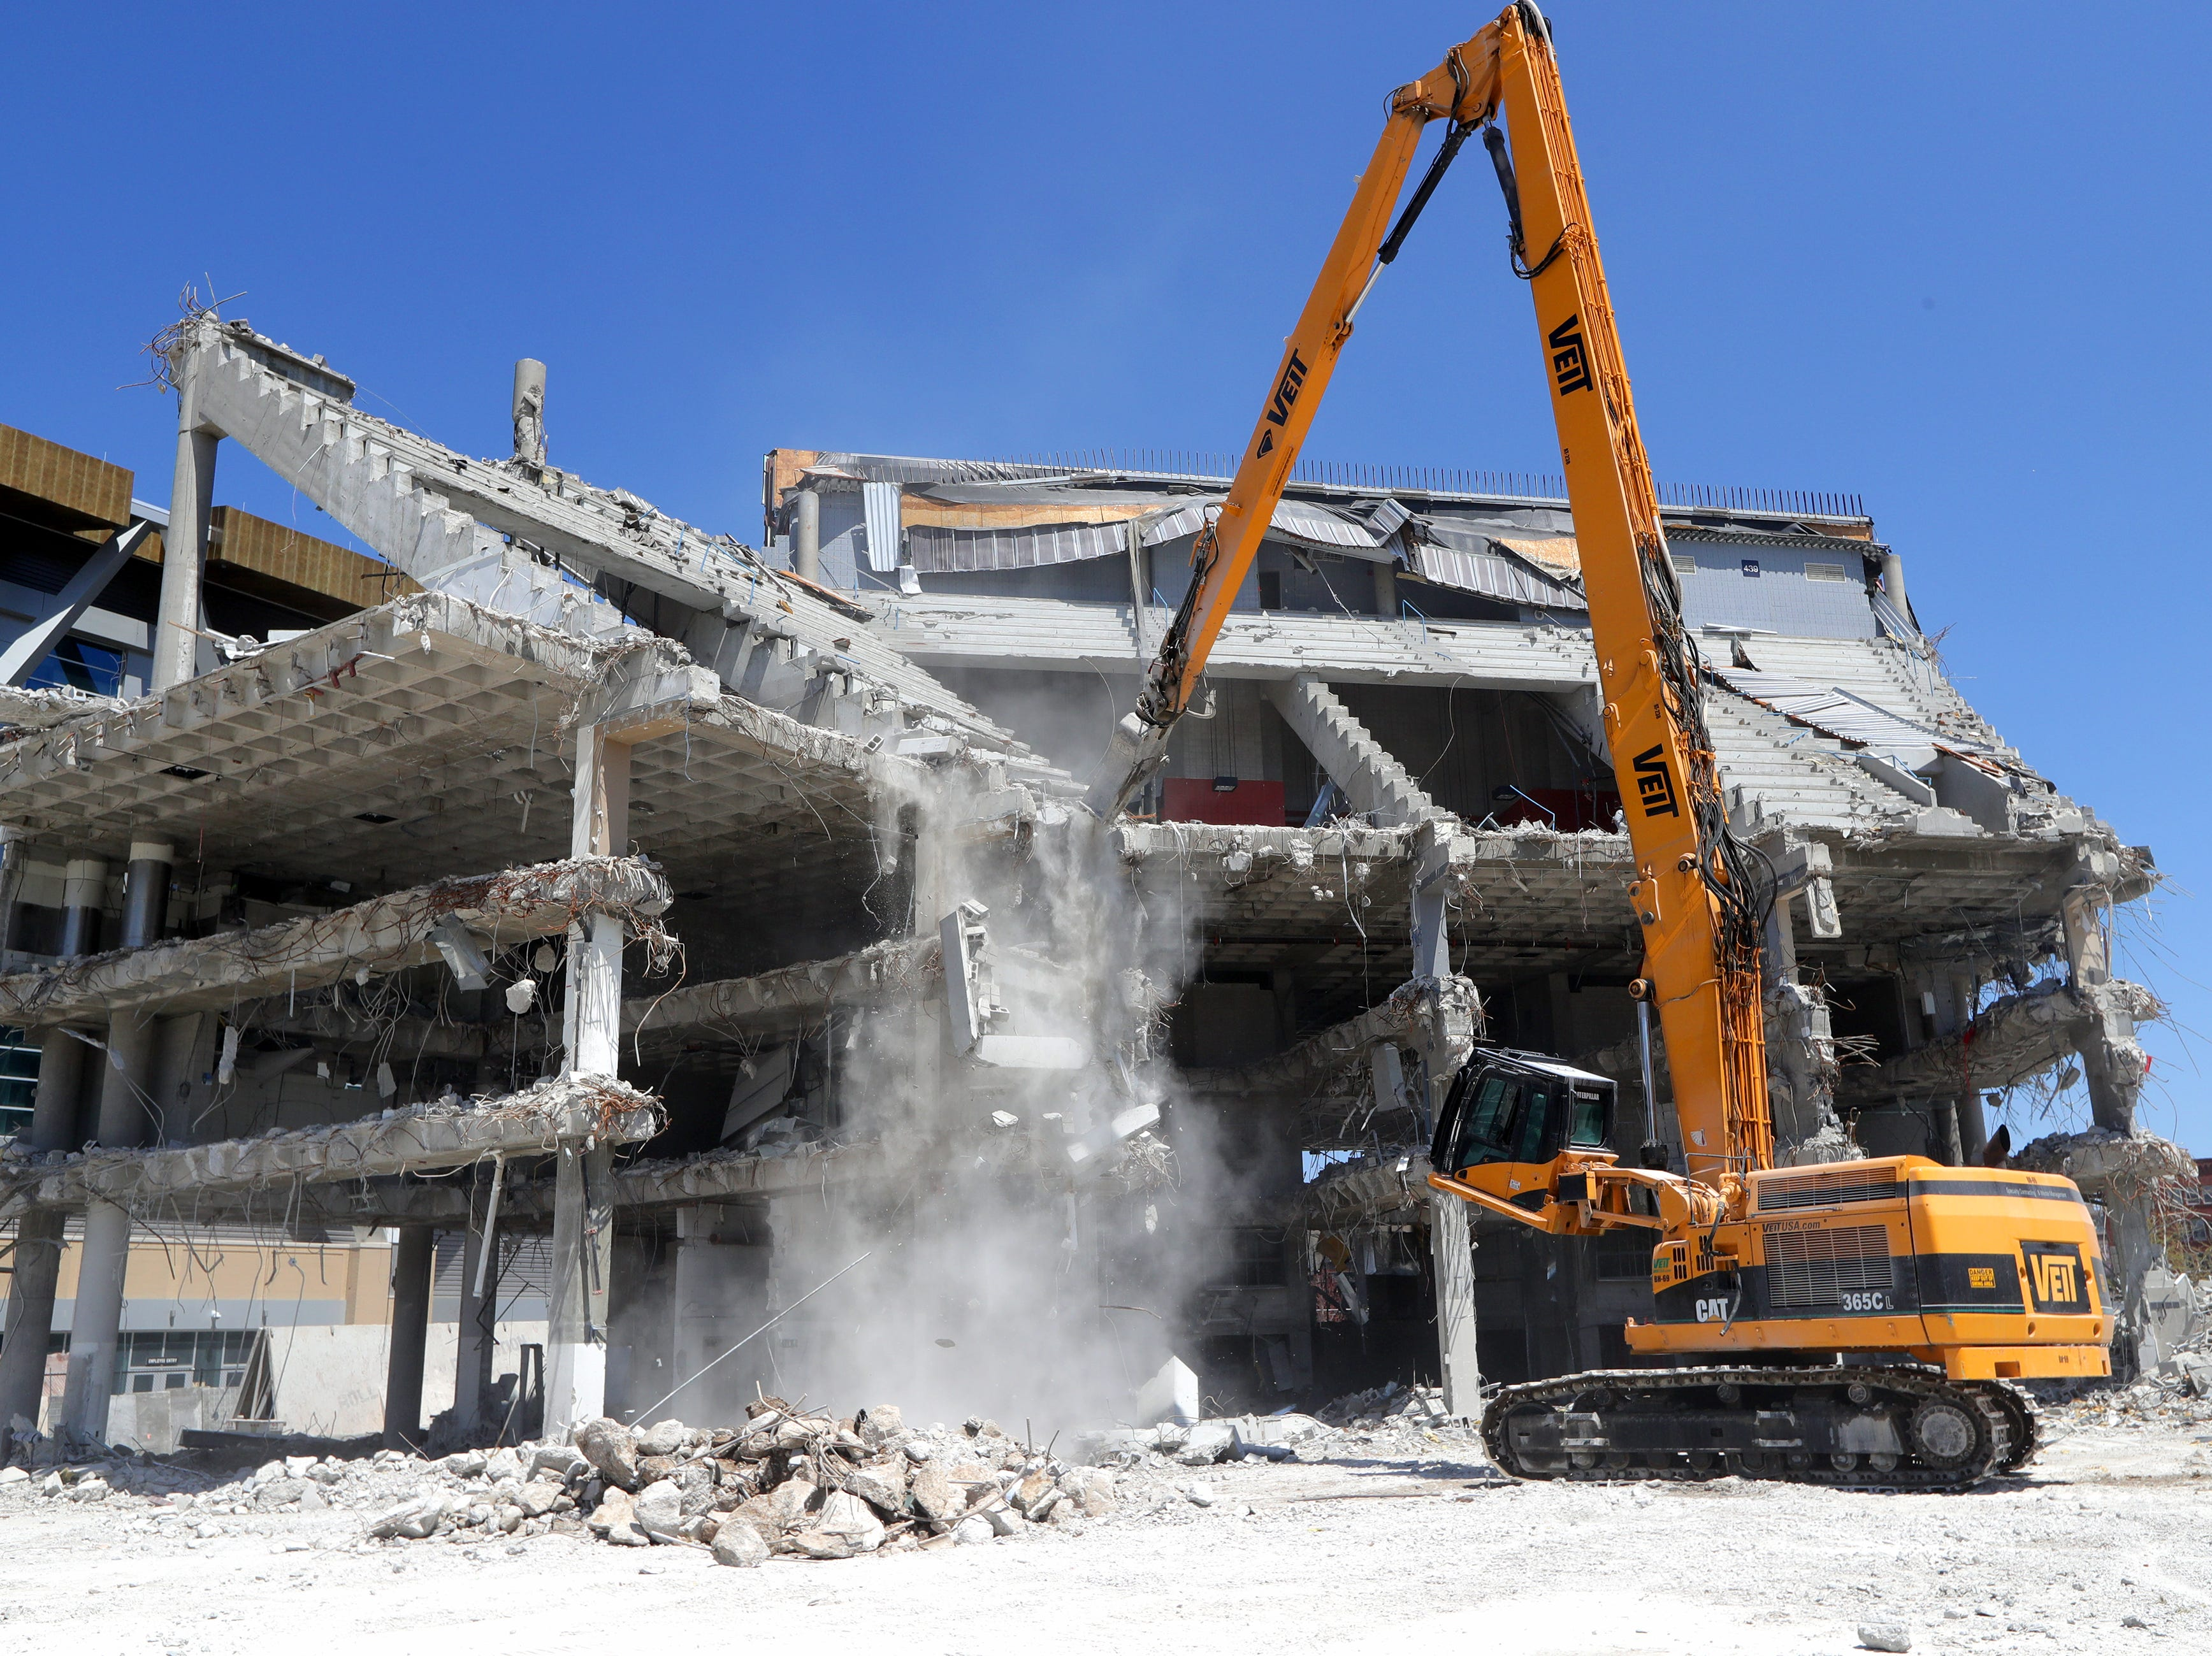 Joe McEwen, a demolition machine operator with Veit & Company, Inc. operates the high reach demolition excavatorbeing used to take down the BMO Harris Bradley Center, where the Milwaukee Bucks used to play, in Milwaukee on Monday, May 13, 2019. Photo by Mike De Sisti/Milwaukee Journal Sentinel